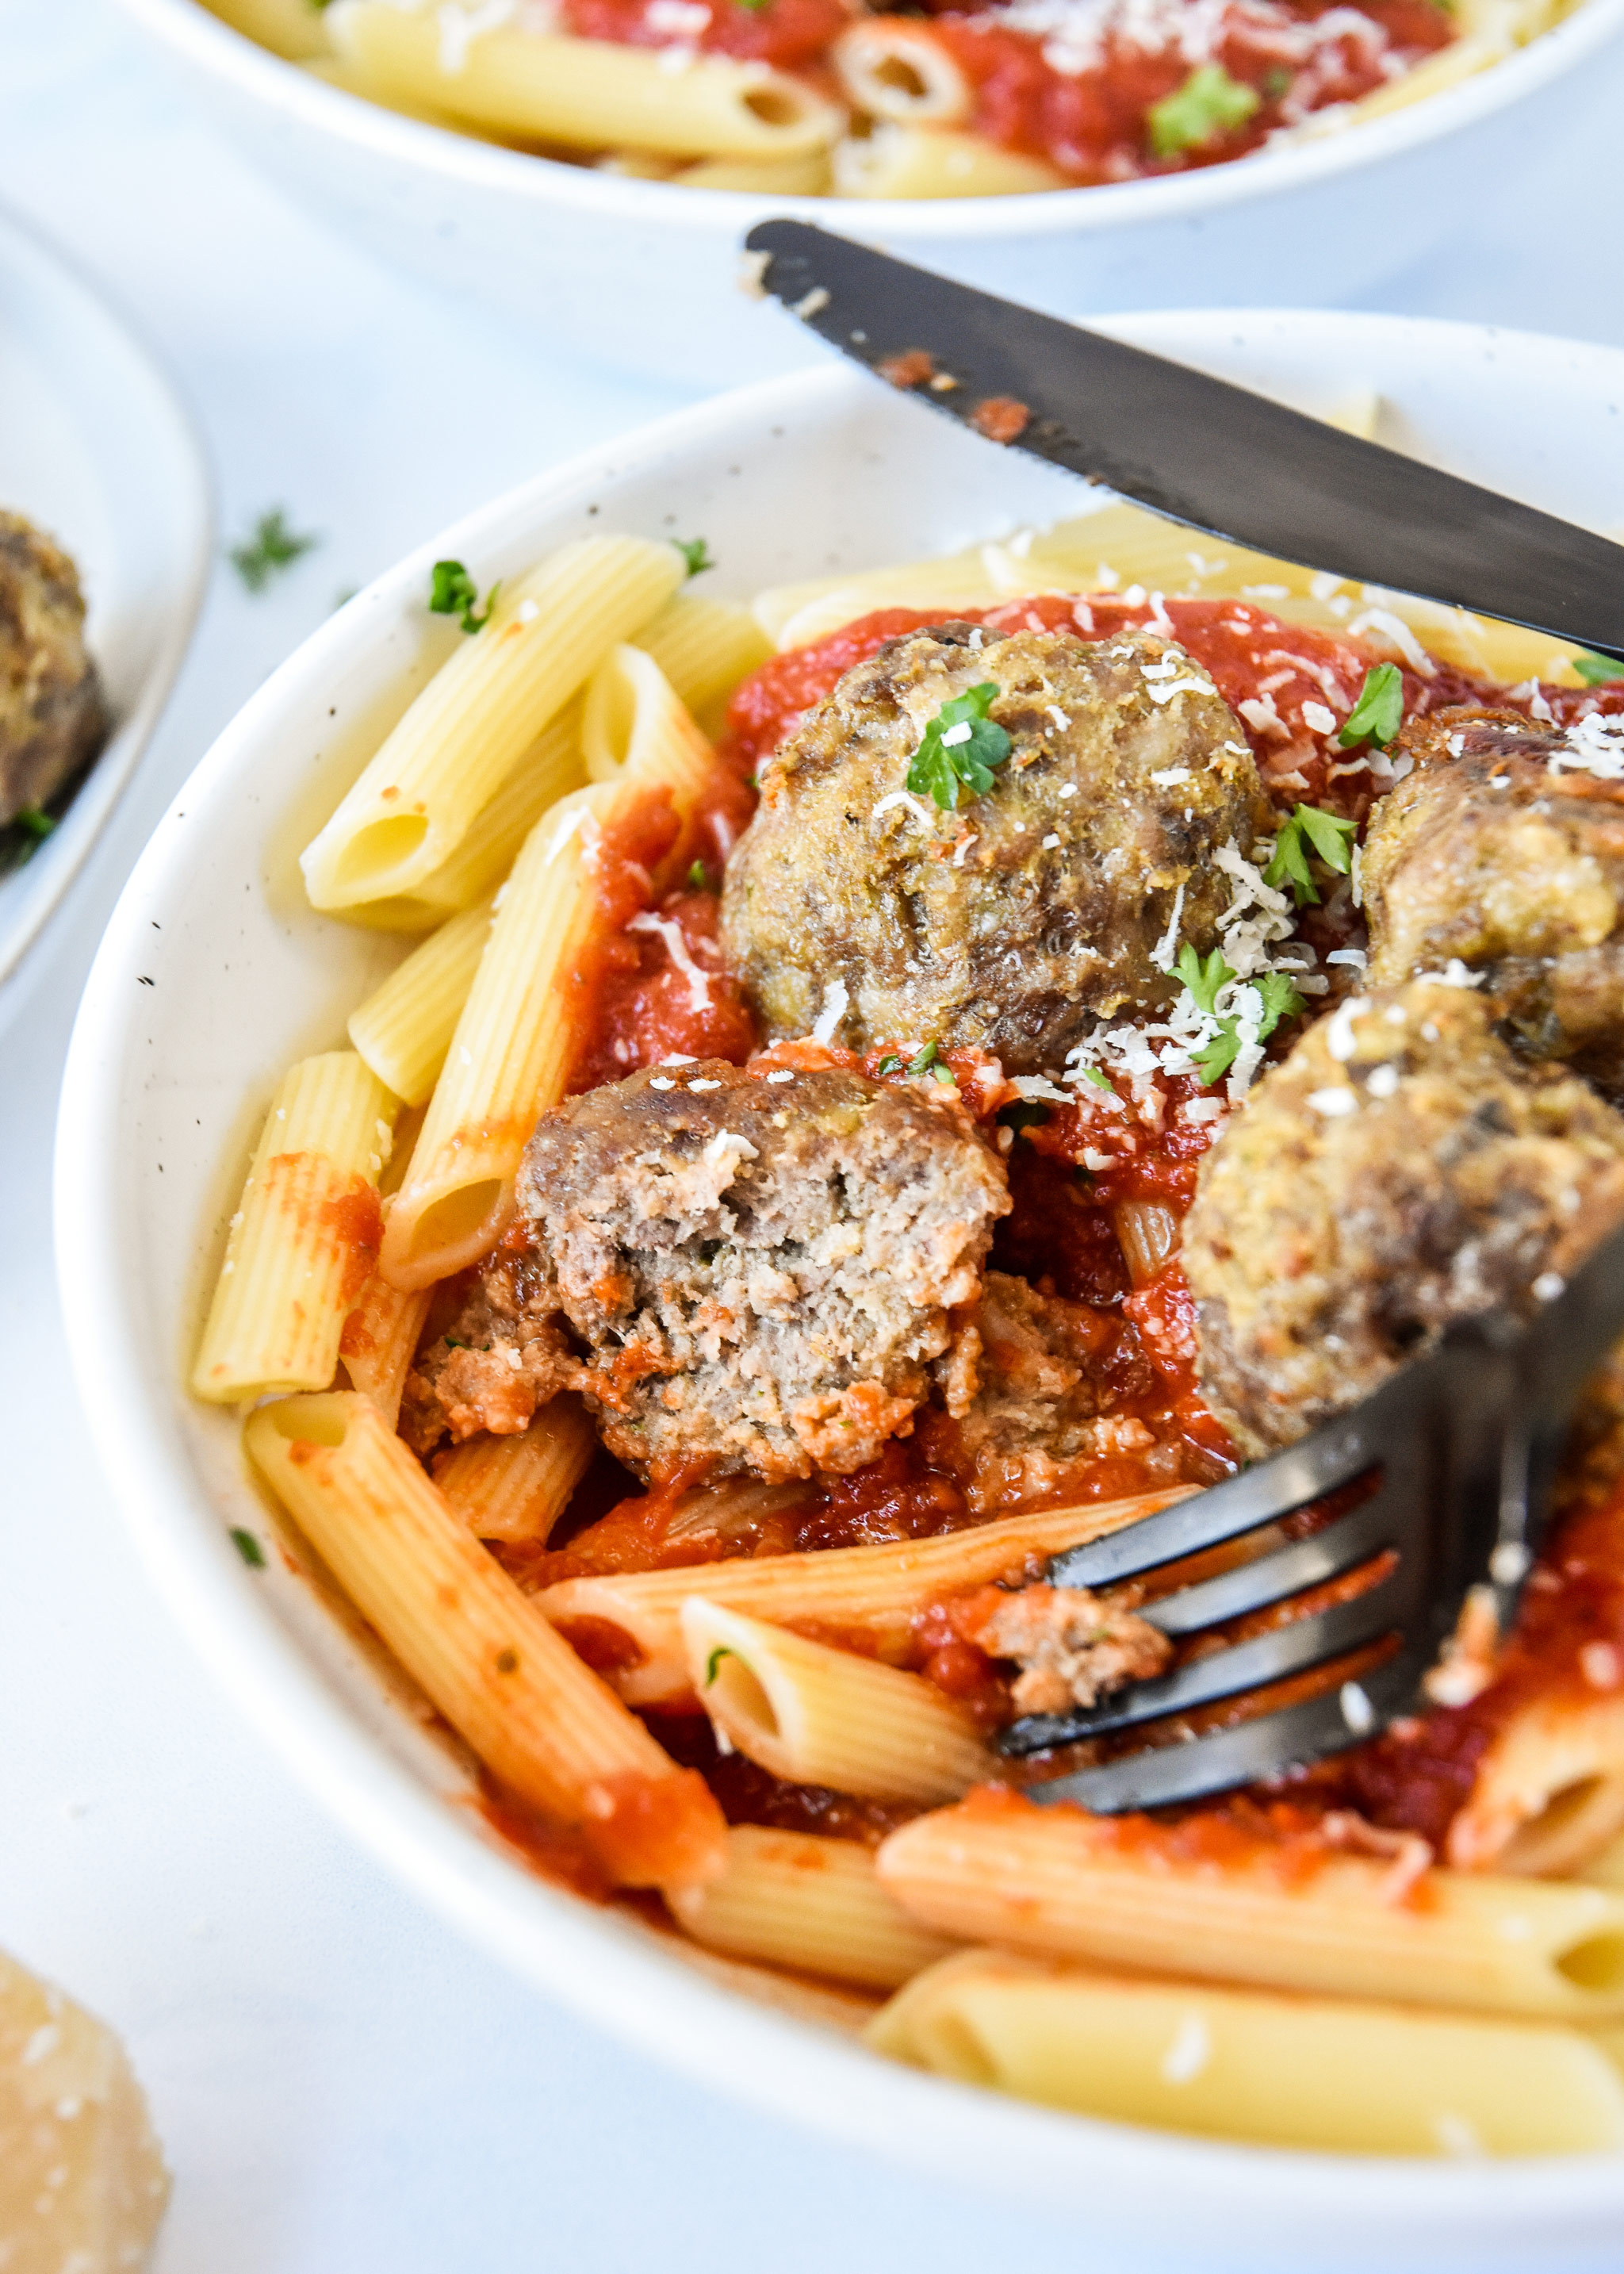 meatball cut in half with pasta and red sauce.